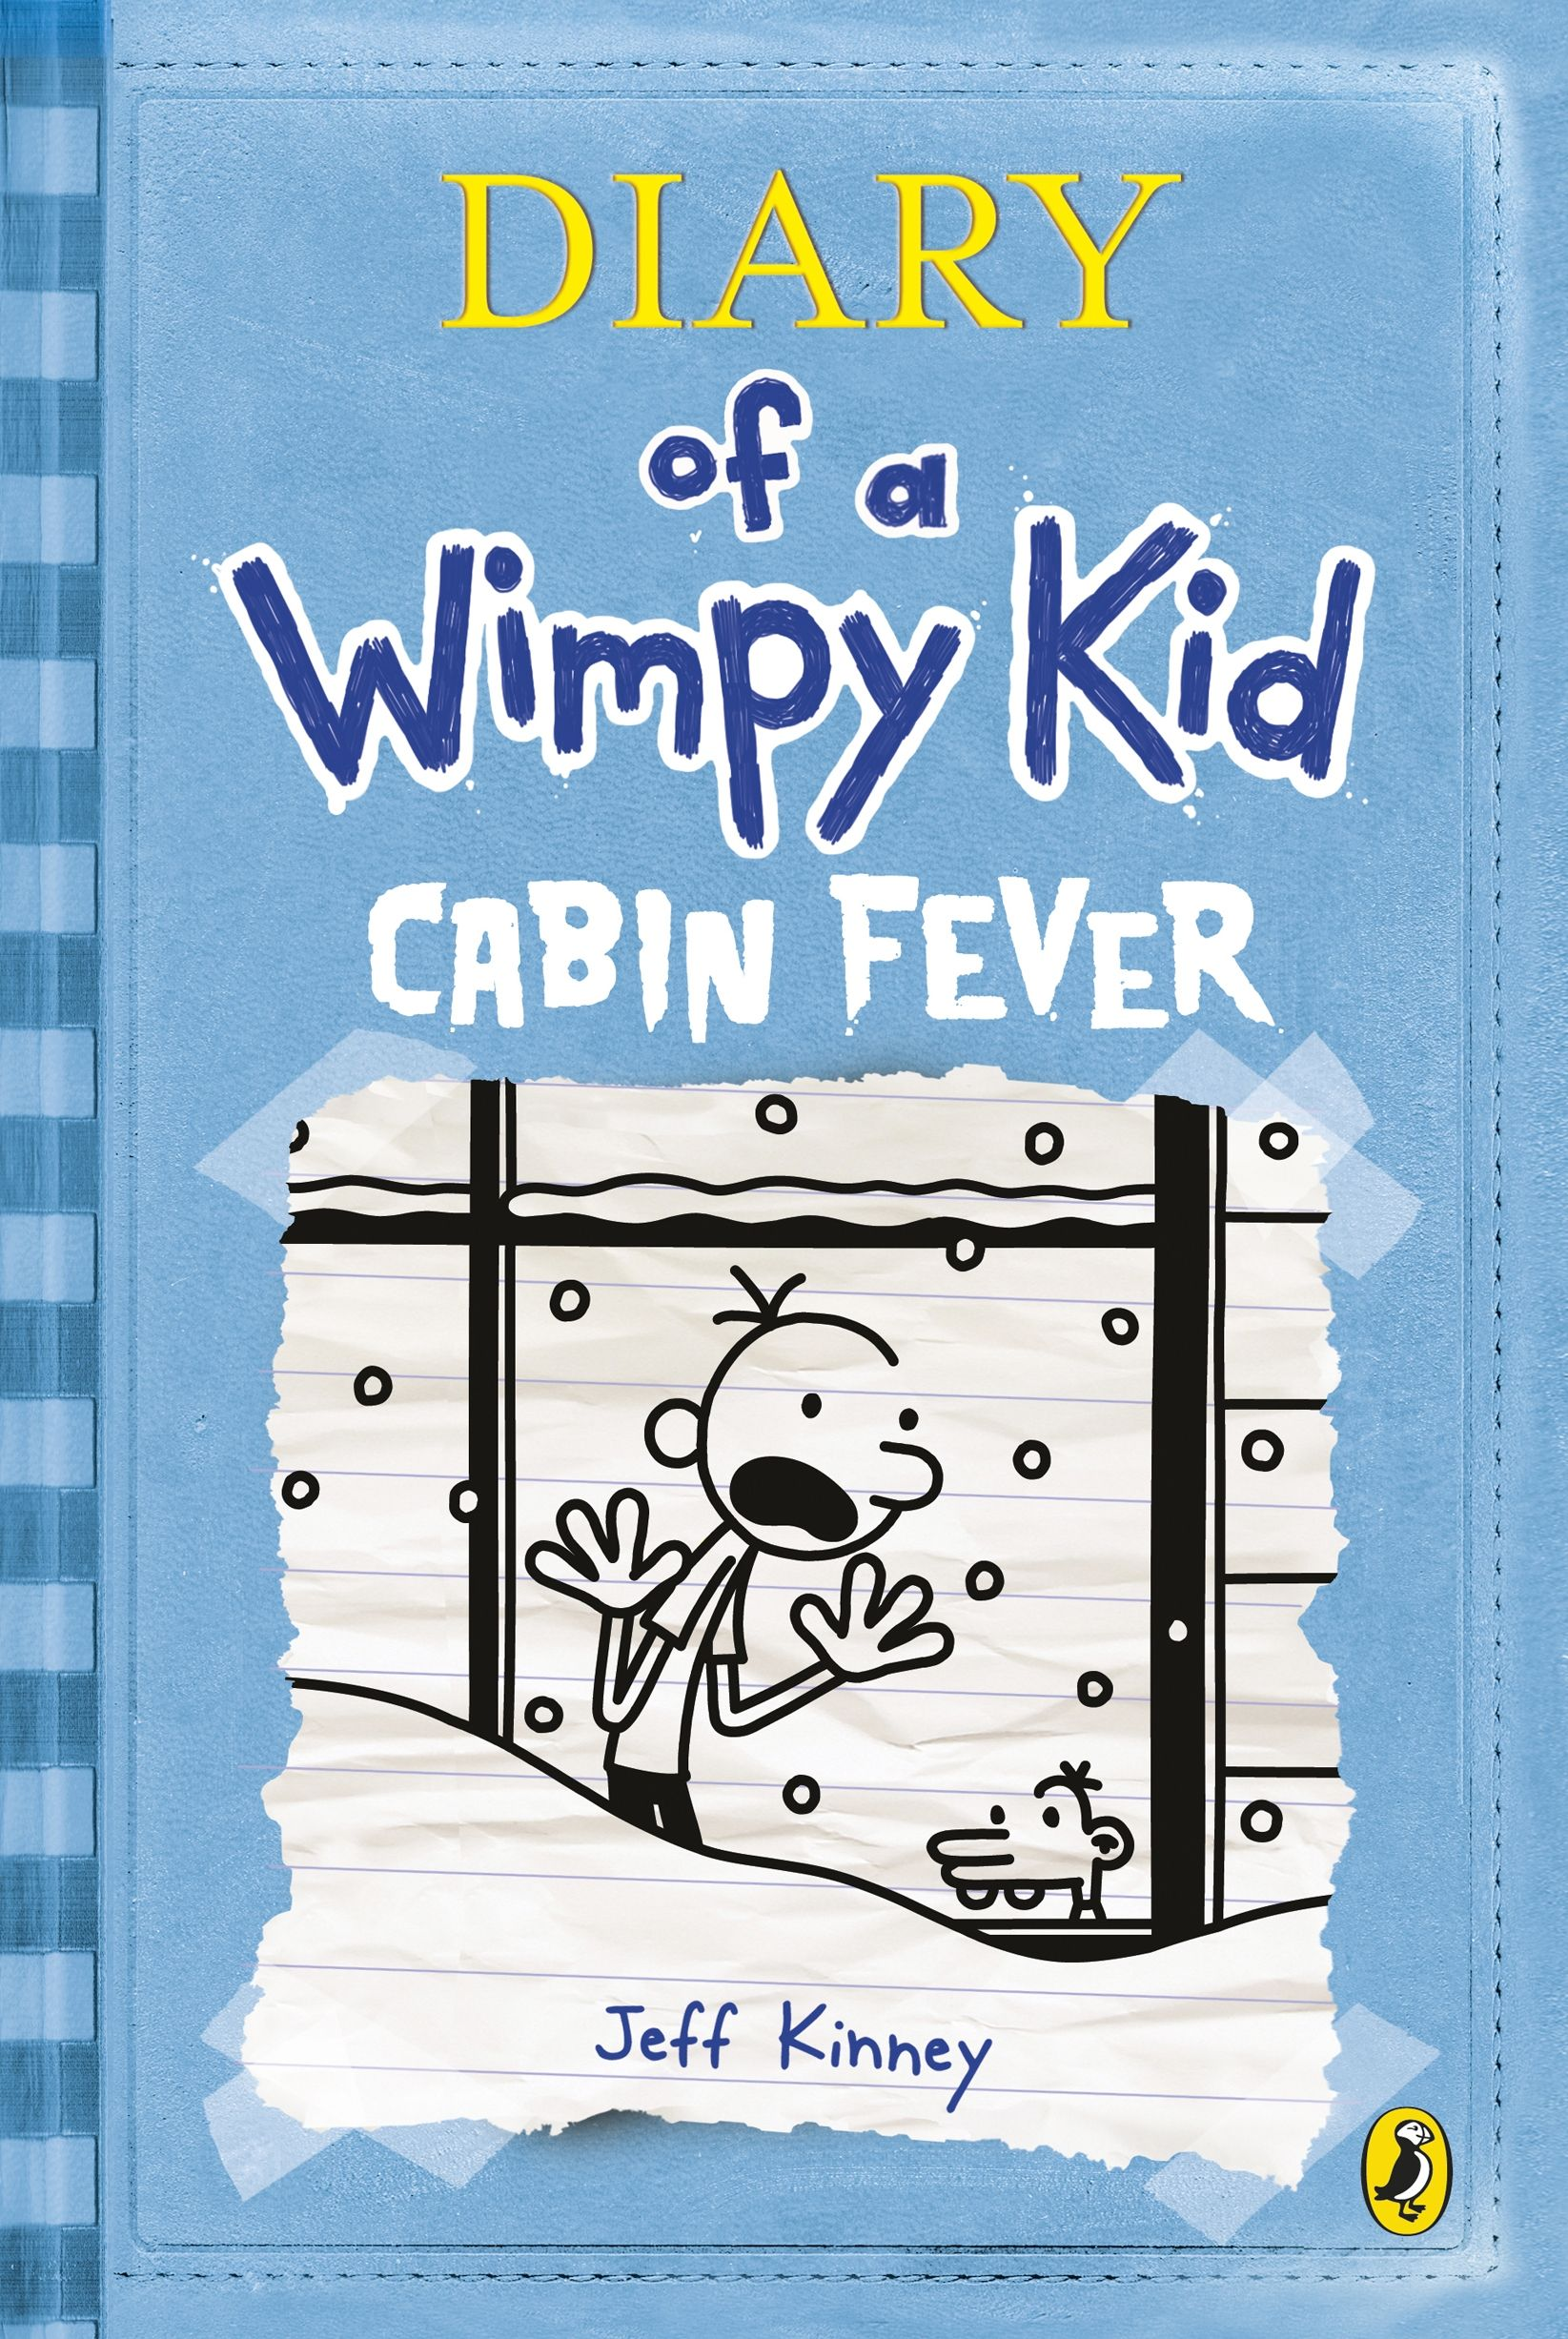 Diary of a wimpy kid cabin fever childrens lit pinterest all about the diary of a wimpy kid series diary of a wimpy kid cabin fever book 6 summary solutioingenieria Choice Image